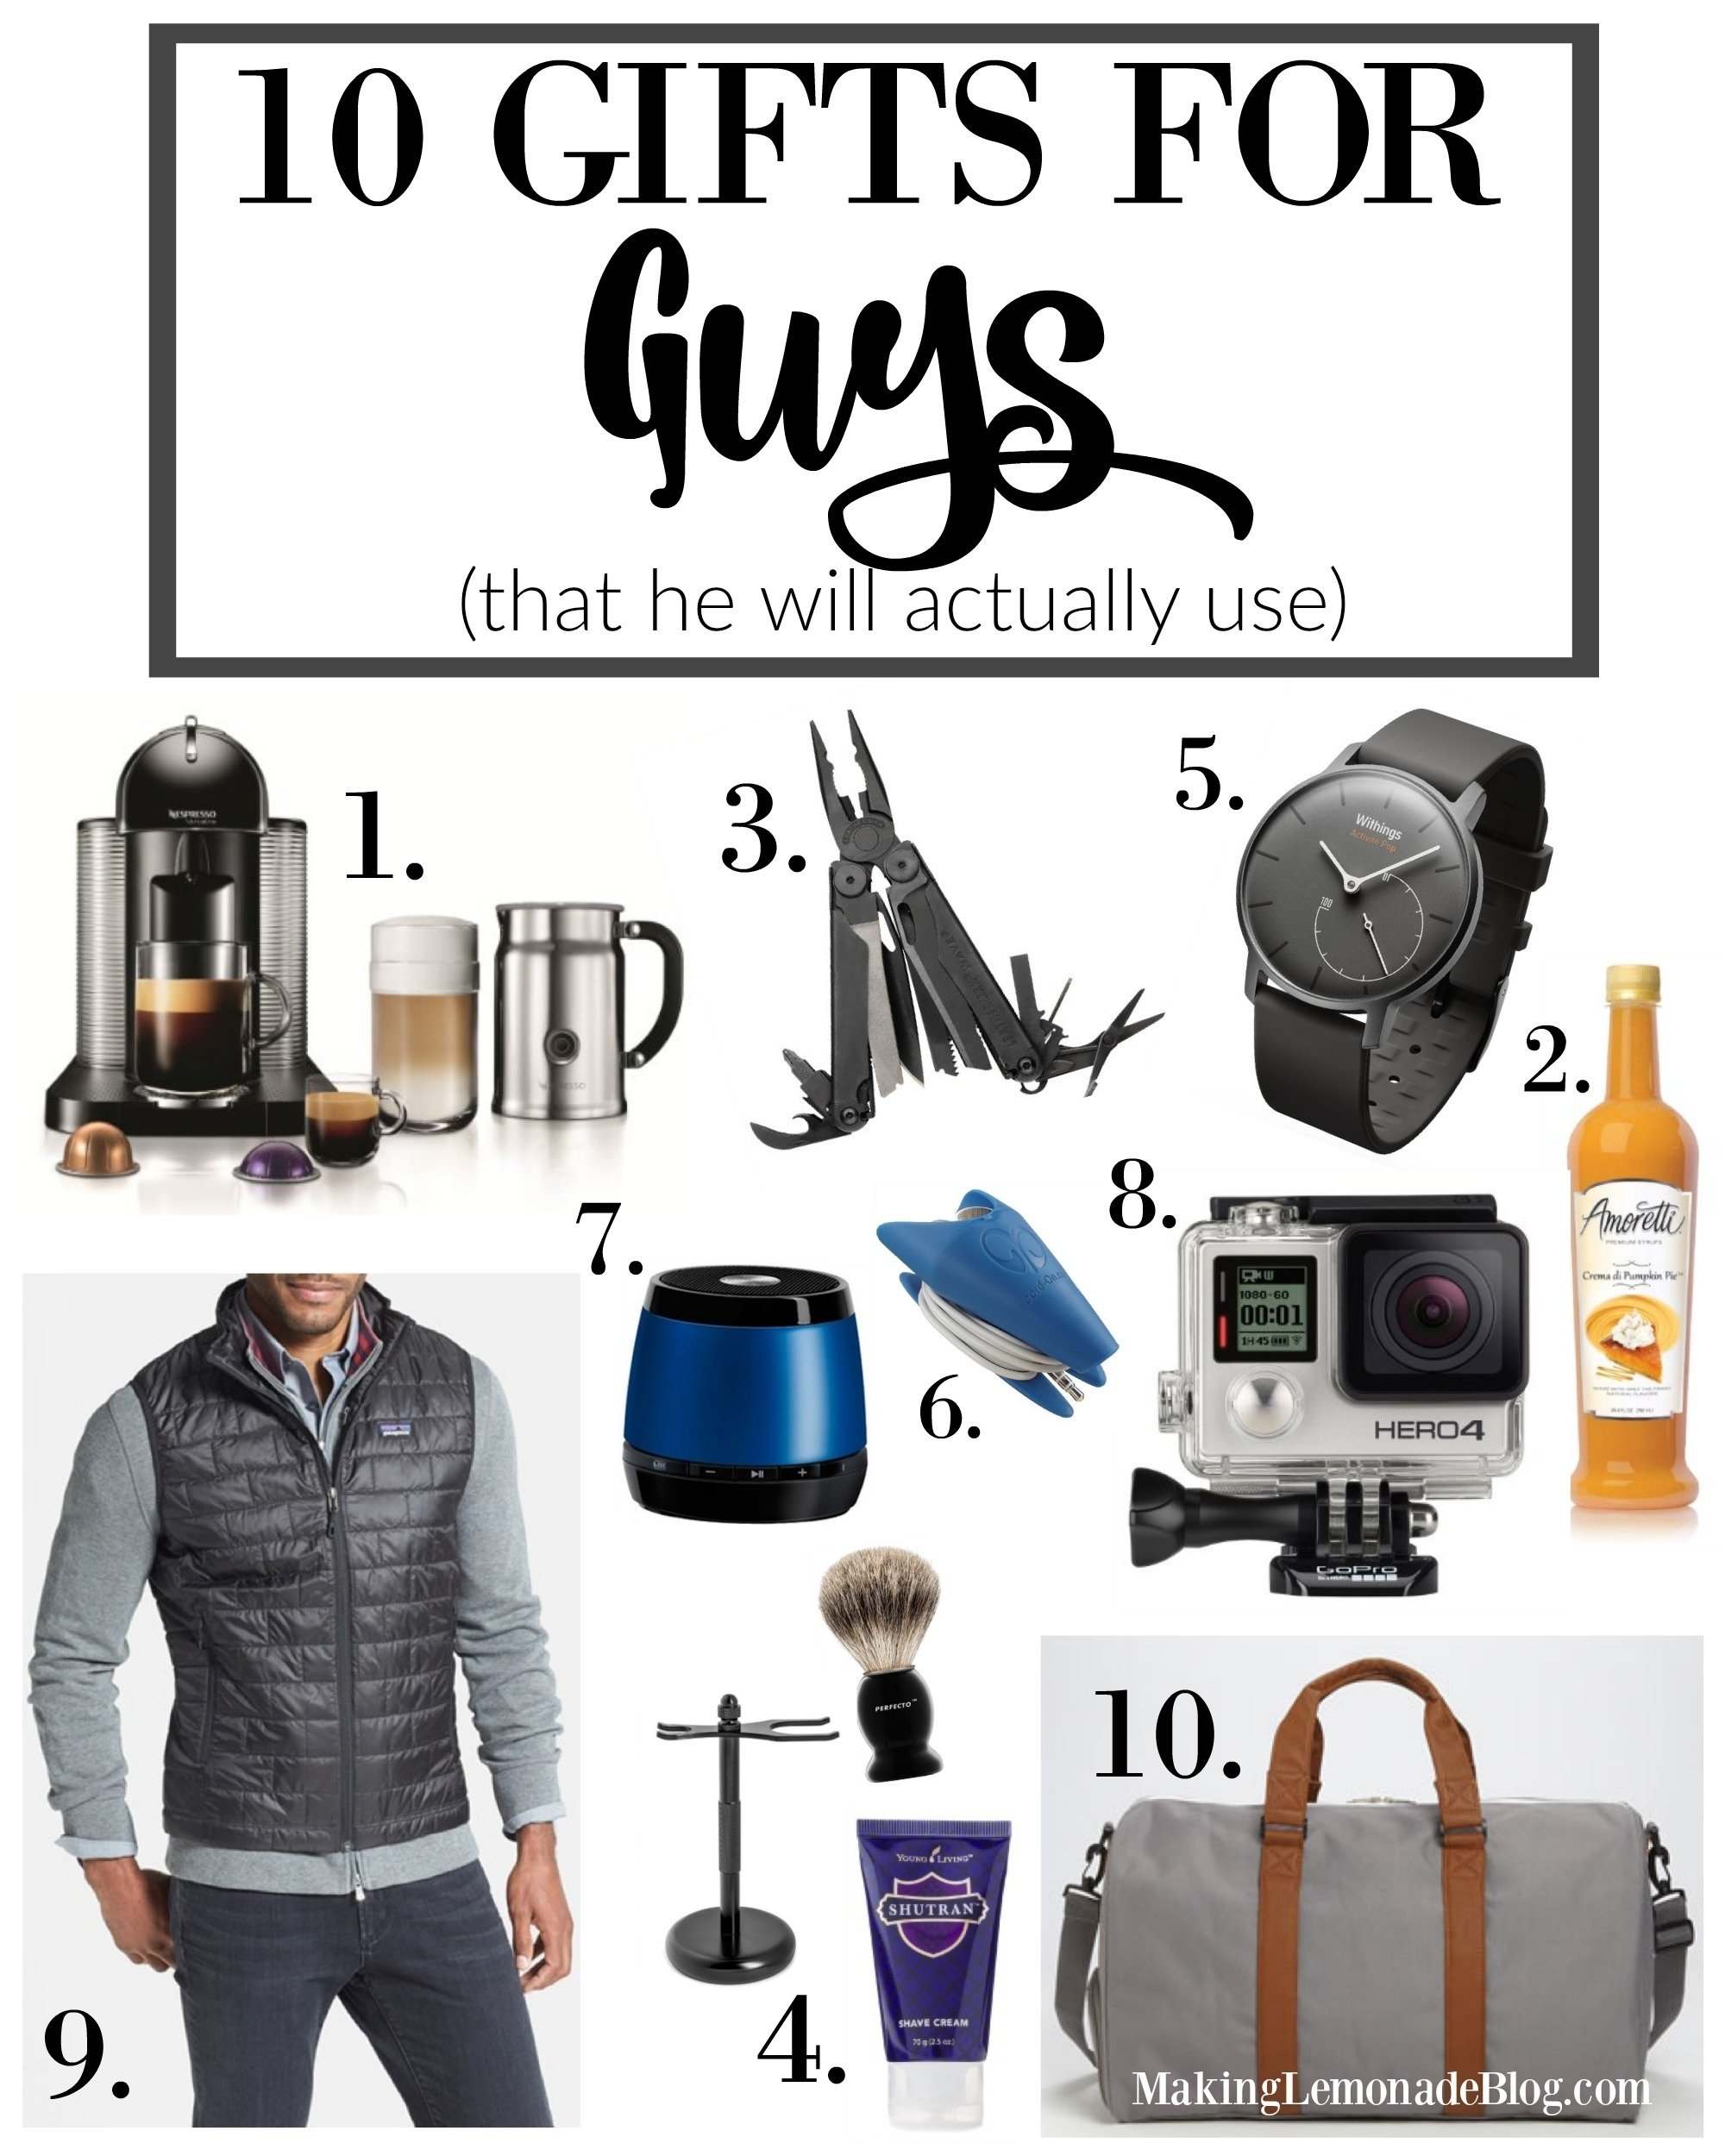 10 best gifts for guys (that he'll actually use) | making lemonade